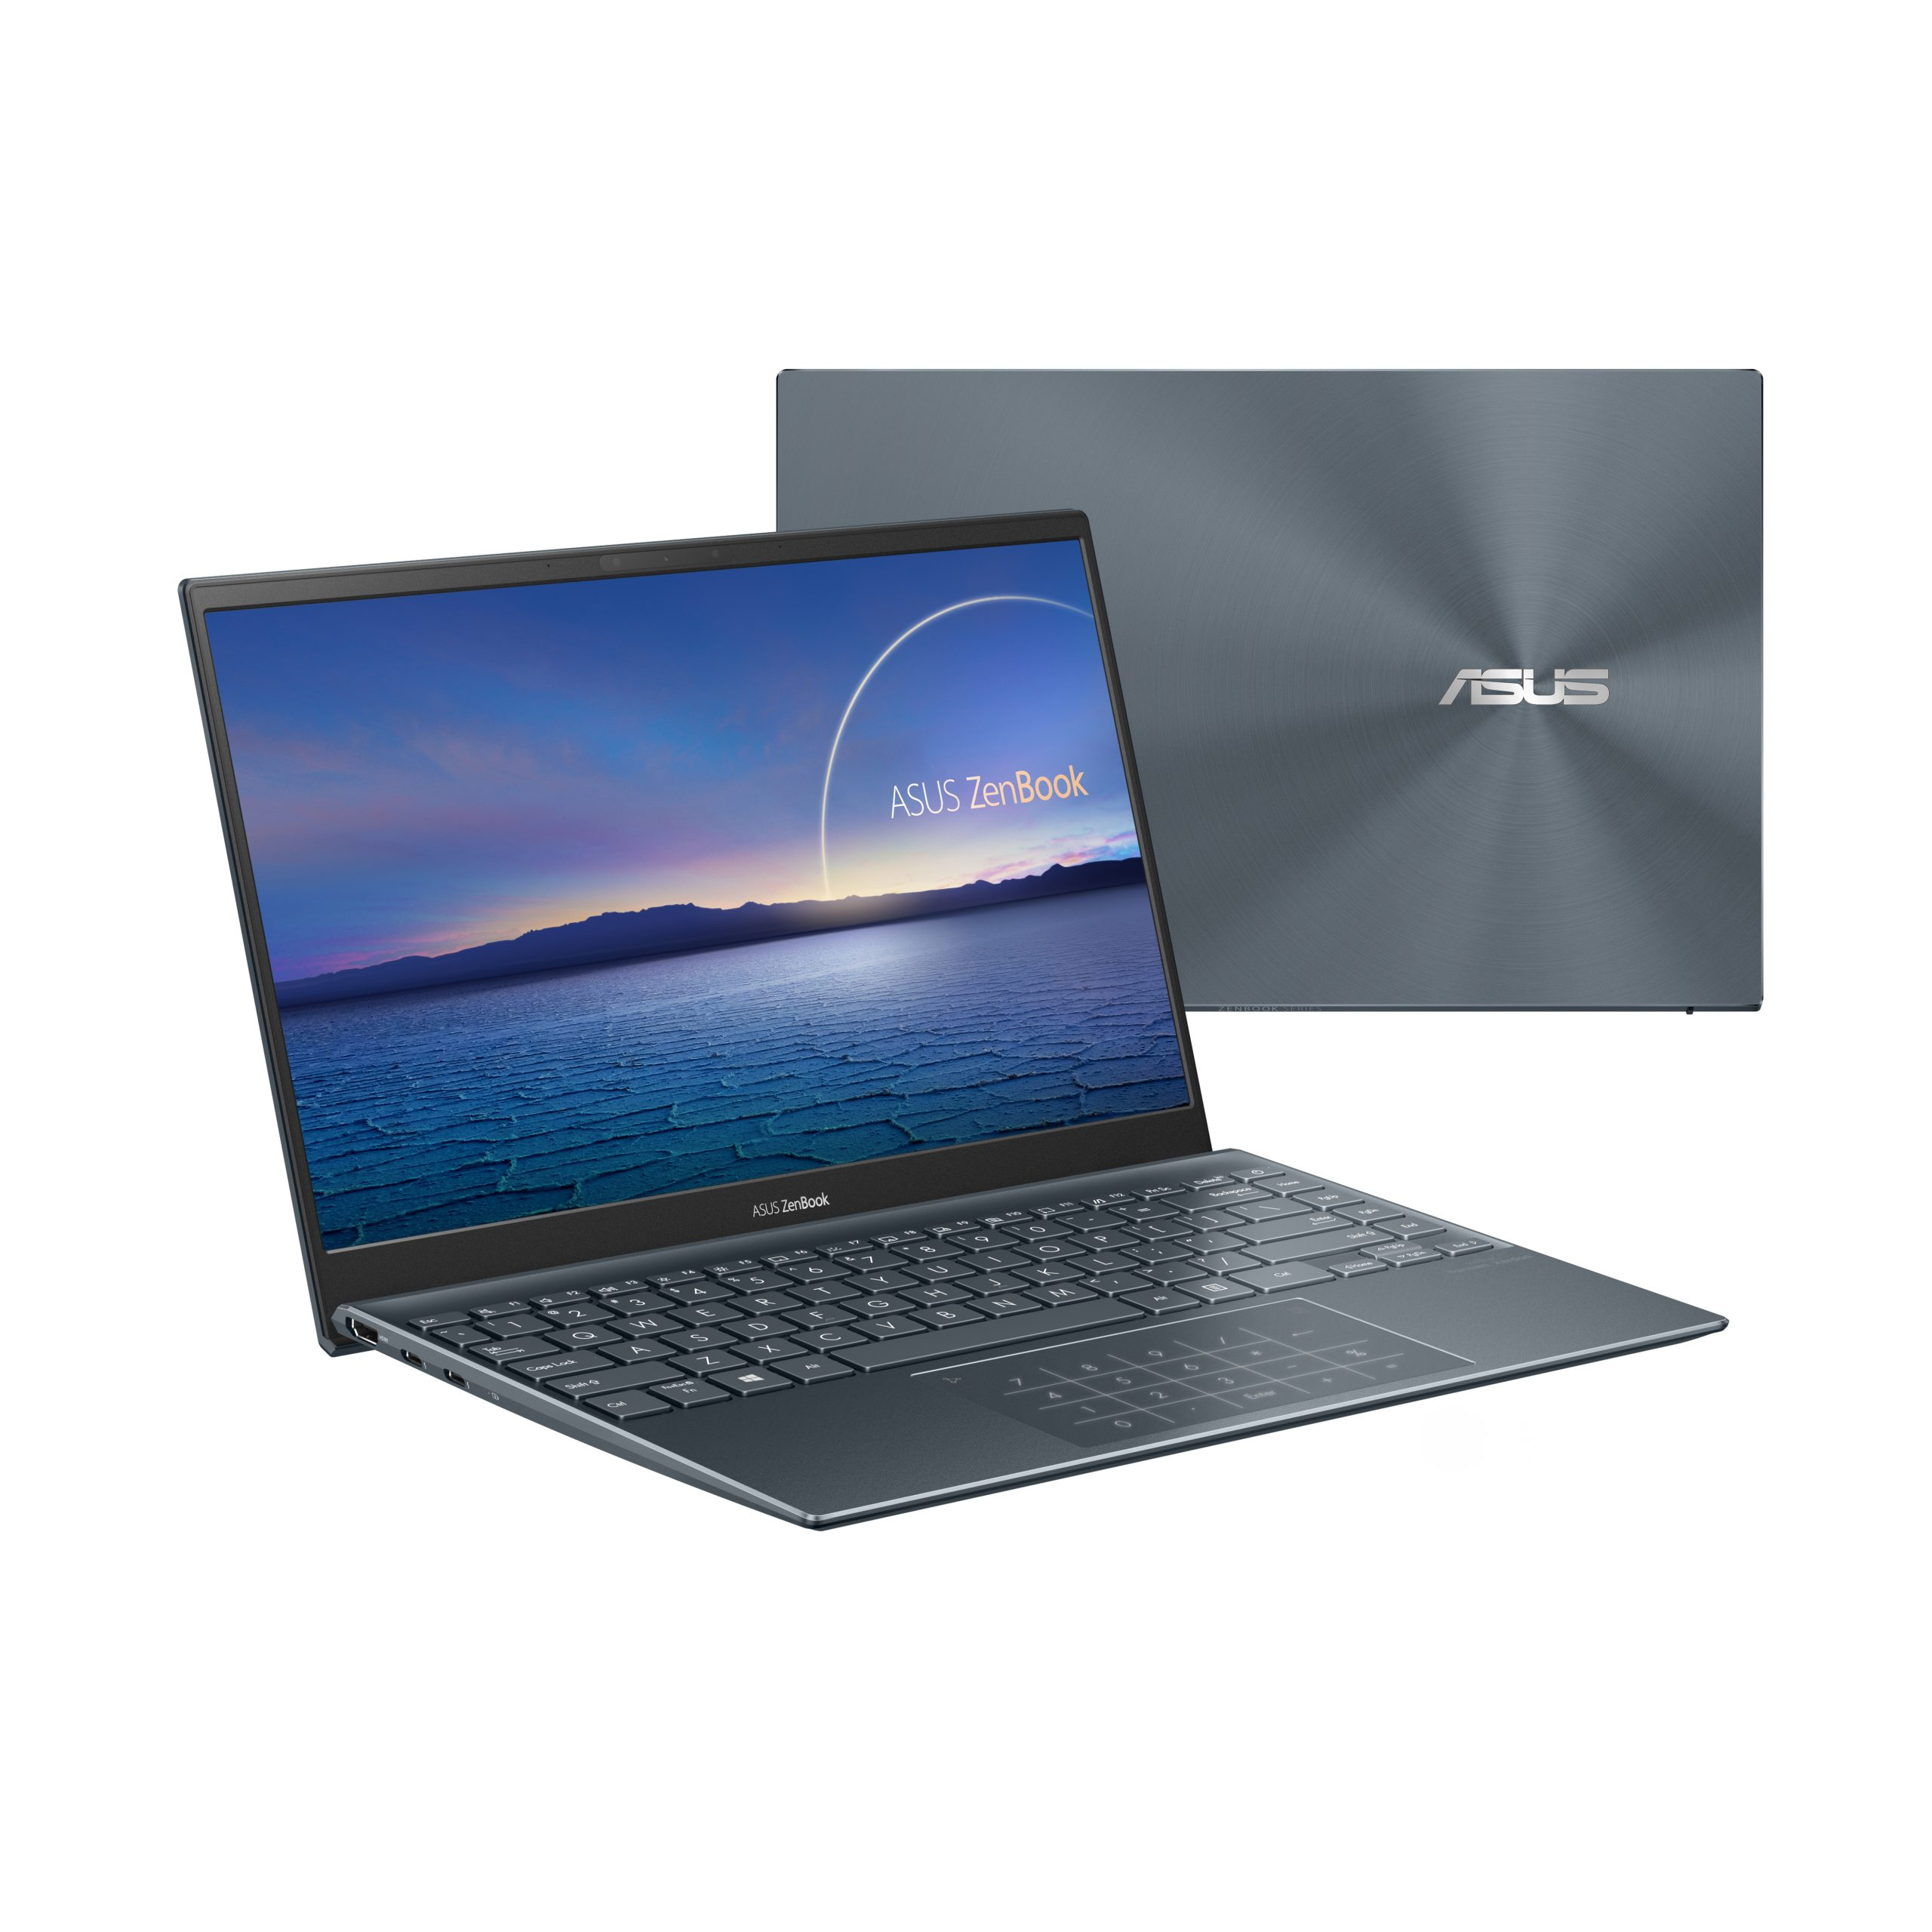 ZenBook 14 UX425 ICL Product photo 2G Pine Grey 13 NumberPad scaled